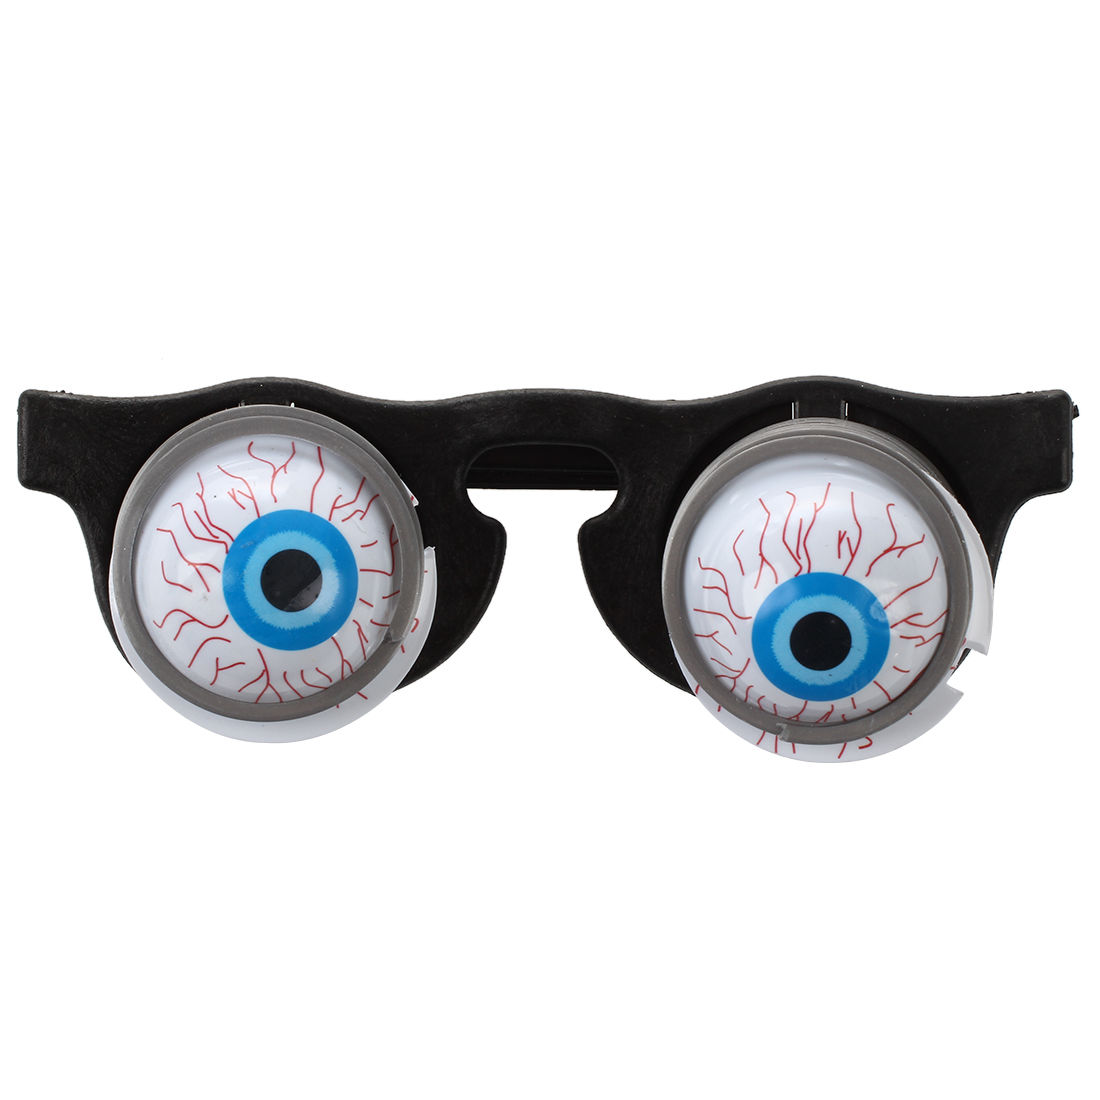 HOT SALE Halloween Carnival Party Plastic Joke Horror Shock Pop Eyes Glasses font b Toy b